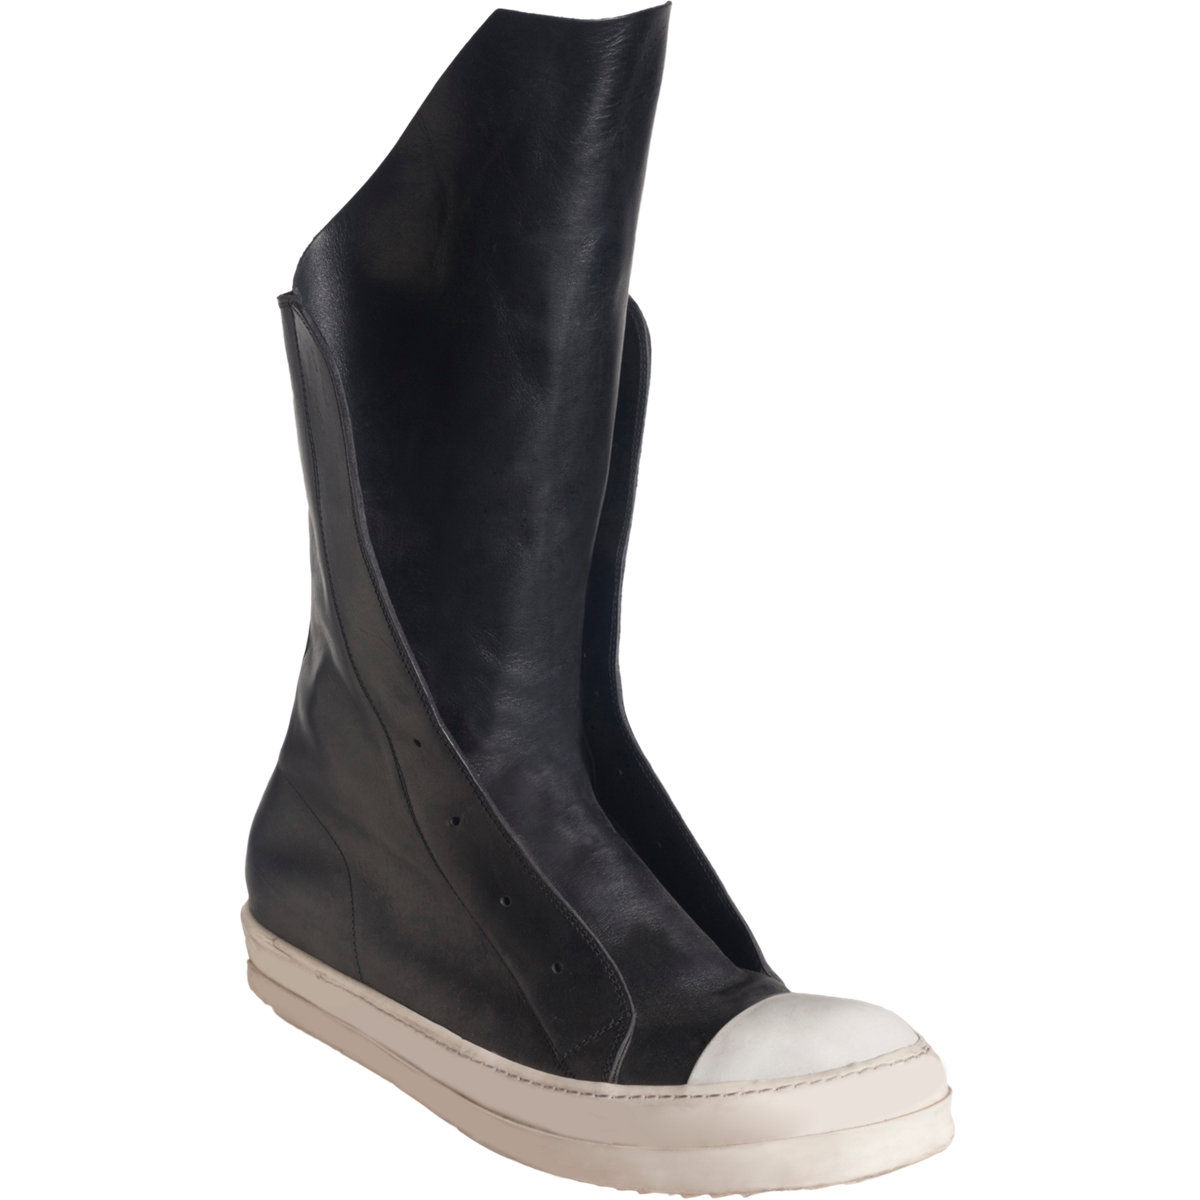 cheap sale official site with paypal free shipping Rick Owens laceless sneakers sale wholesale price enjoy sale online outlet eastbay AmxVHn